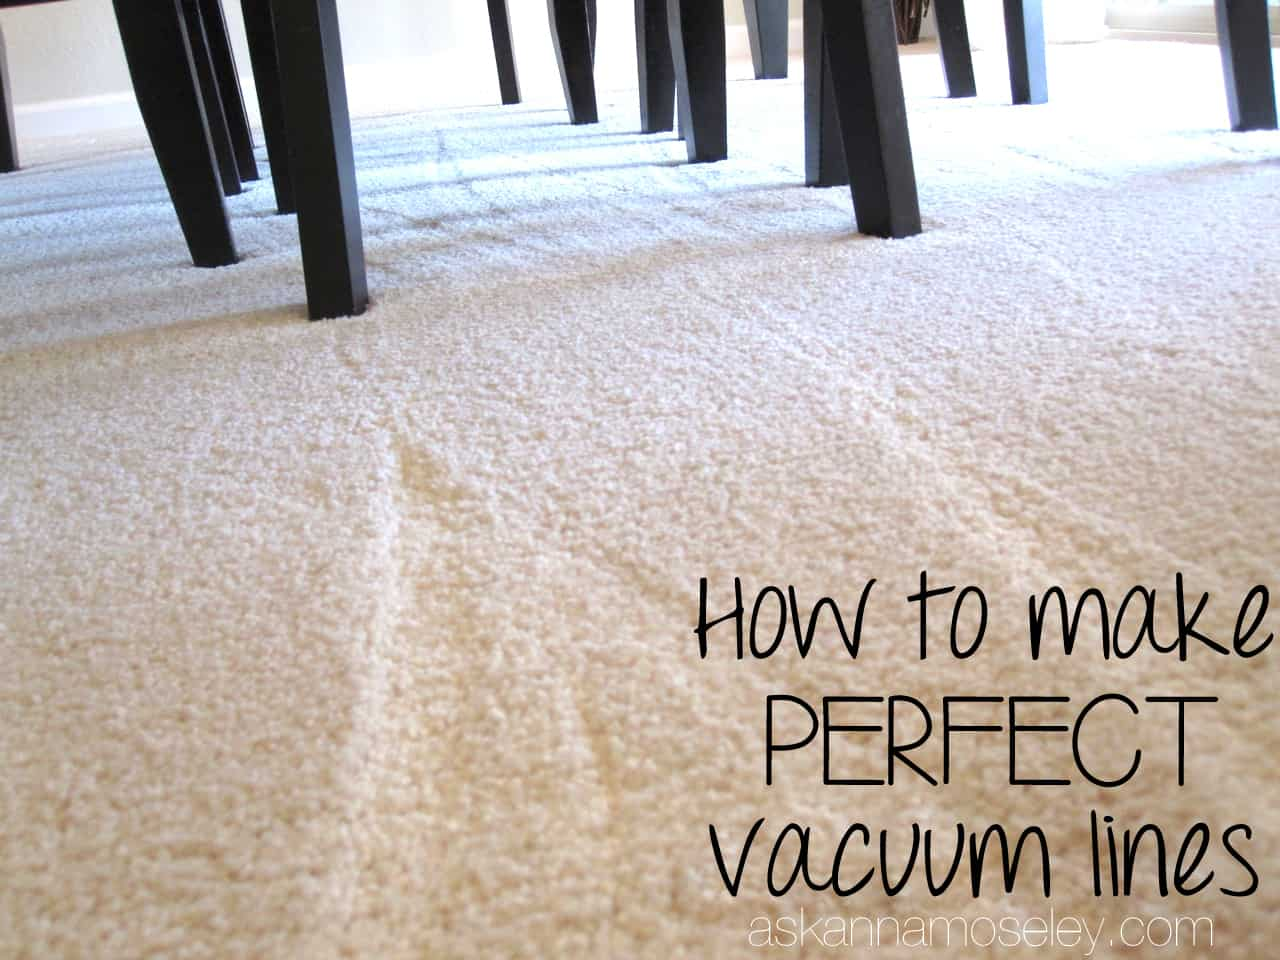 Tips and a video tutorial for how to make perfect vacuum lines - Ask Anna